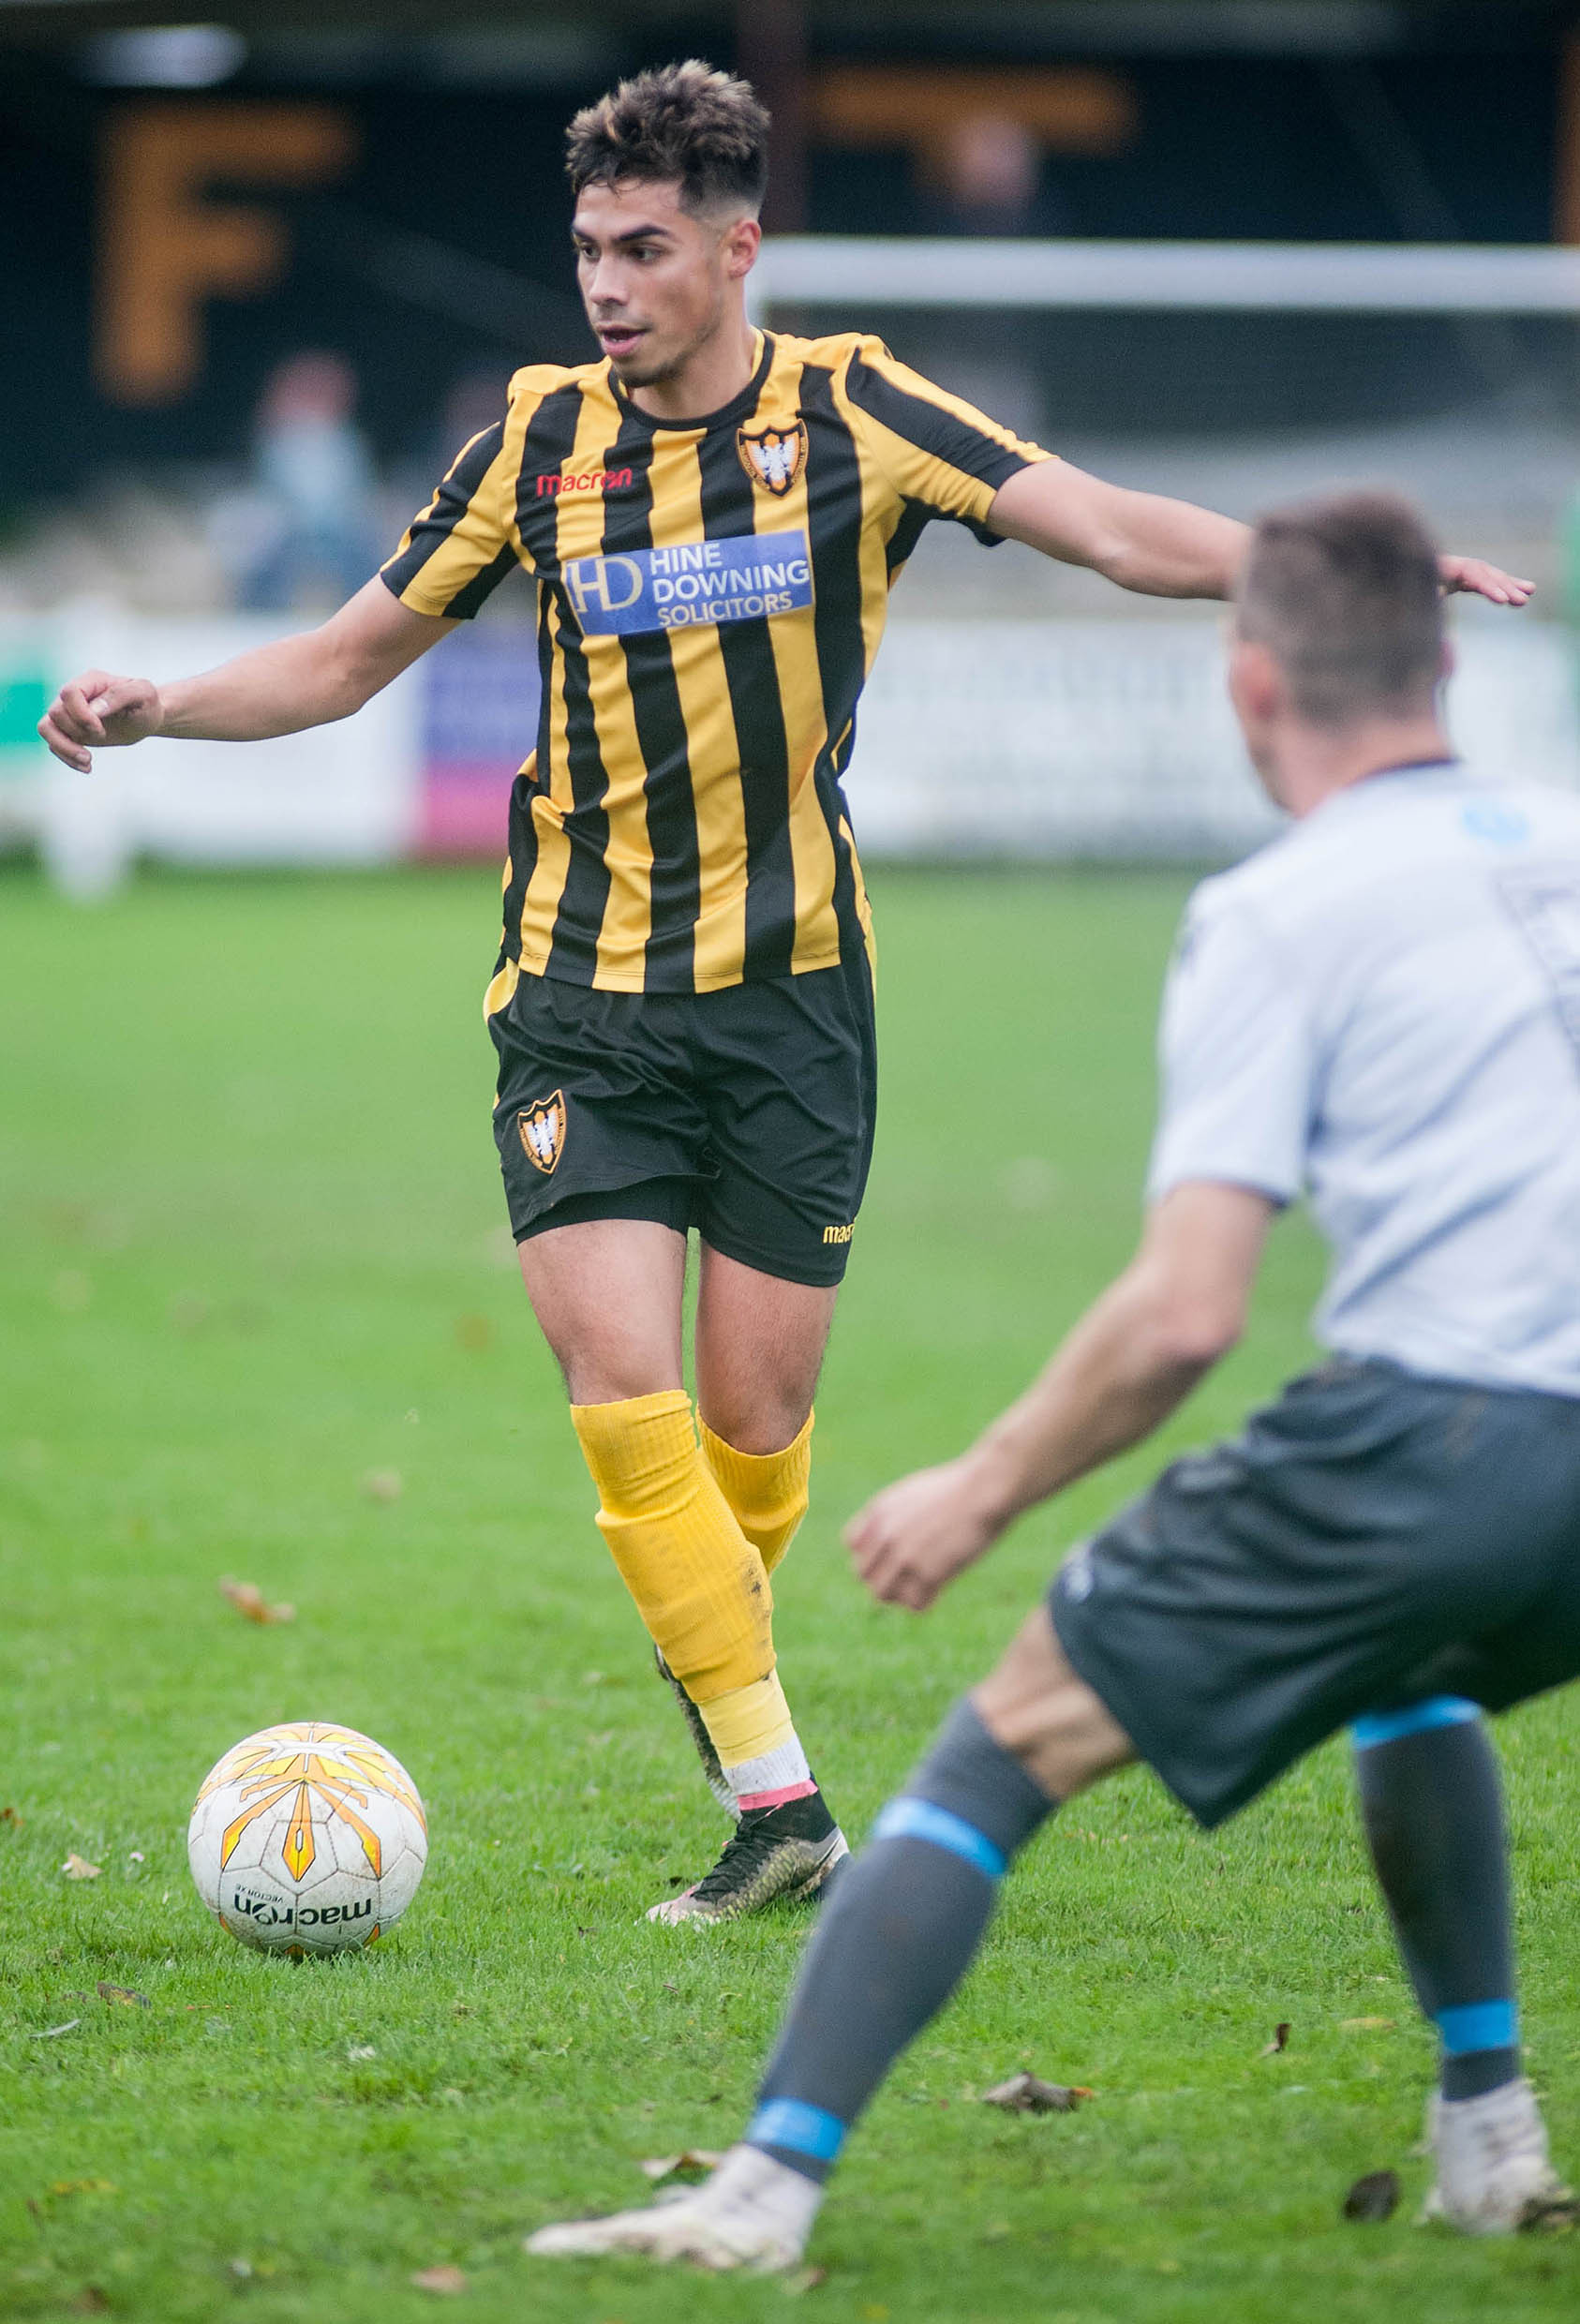 Falmouth Town midfielder Tim Nixon scored a superb equalising goal in his side's 2-1 win at home to Brixham on Saturday. Picture by Colin Higgs